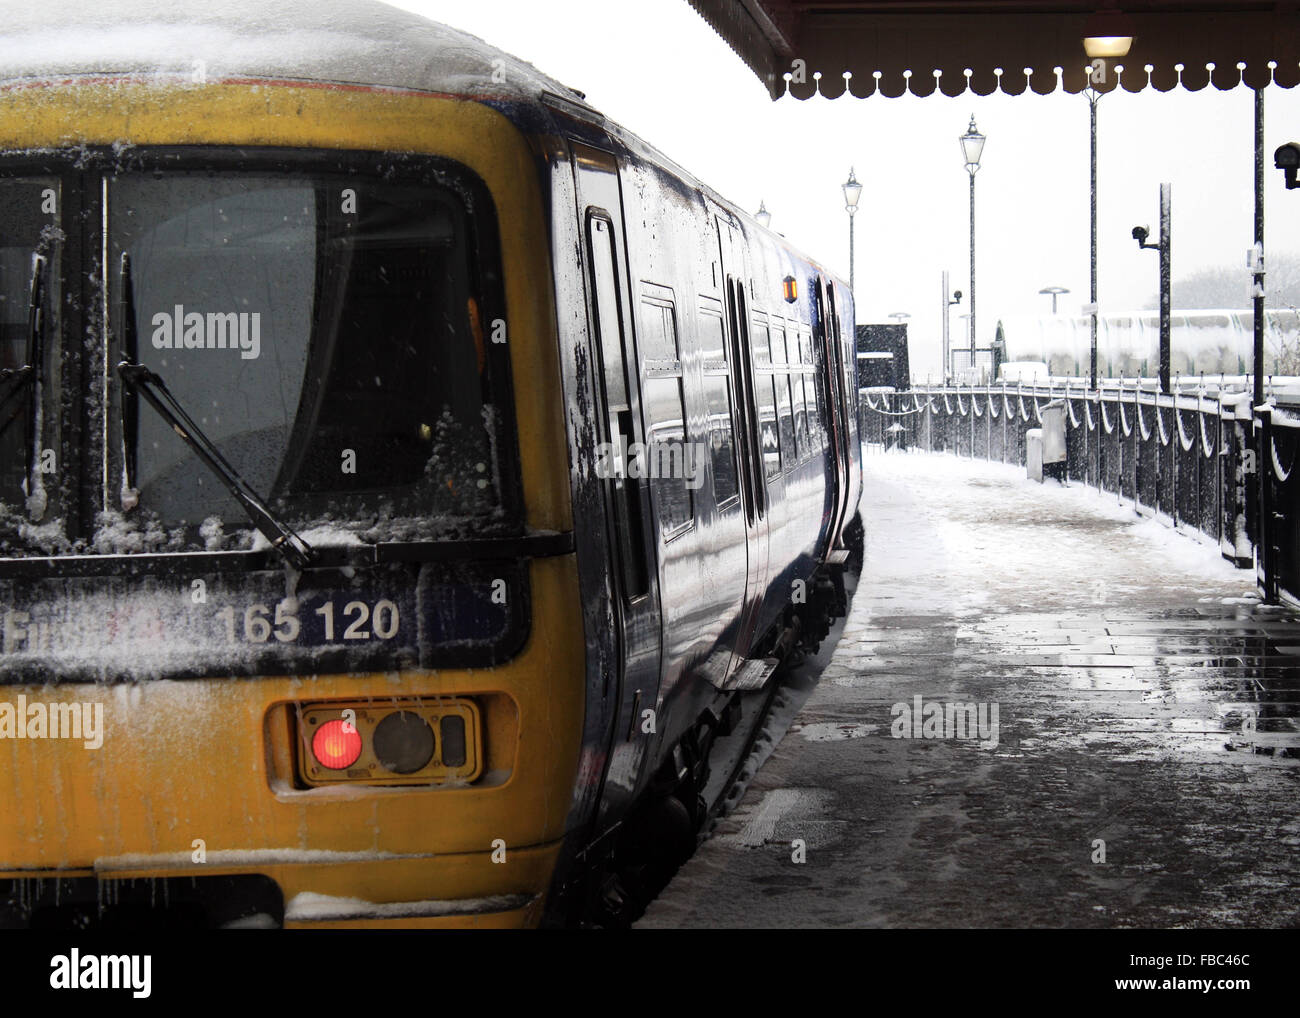 Winter's view of a train at Windsor and Eton railway station, with ice and snow on the train and platform. - Stock Image